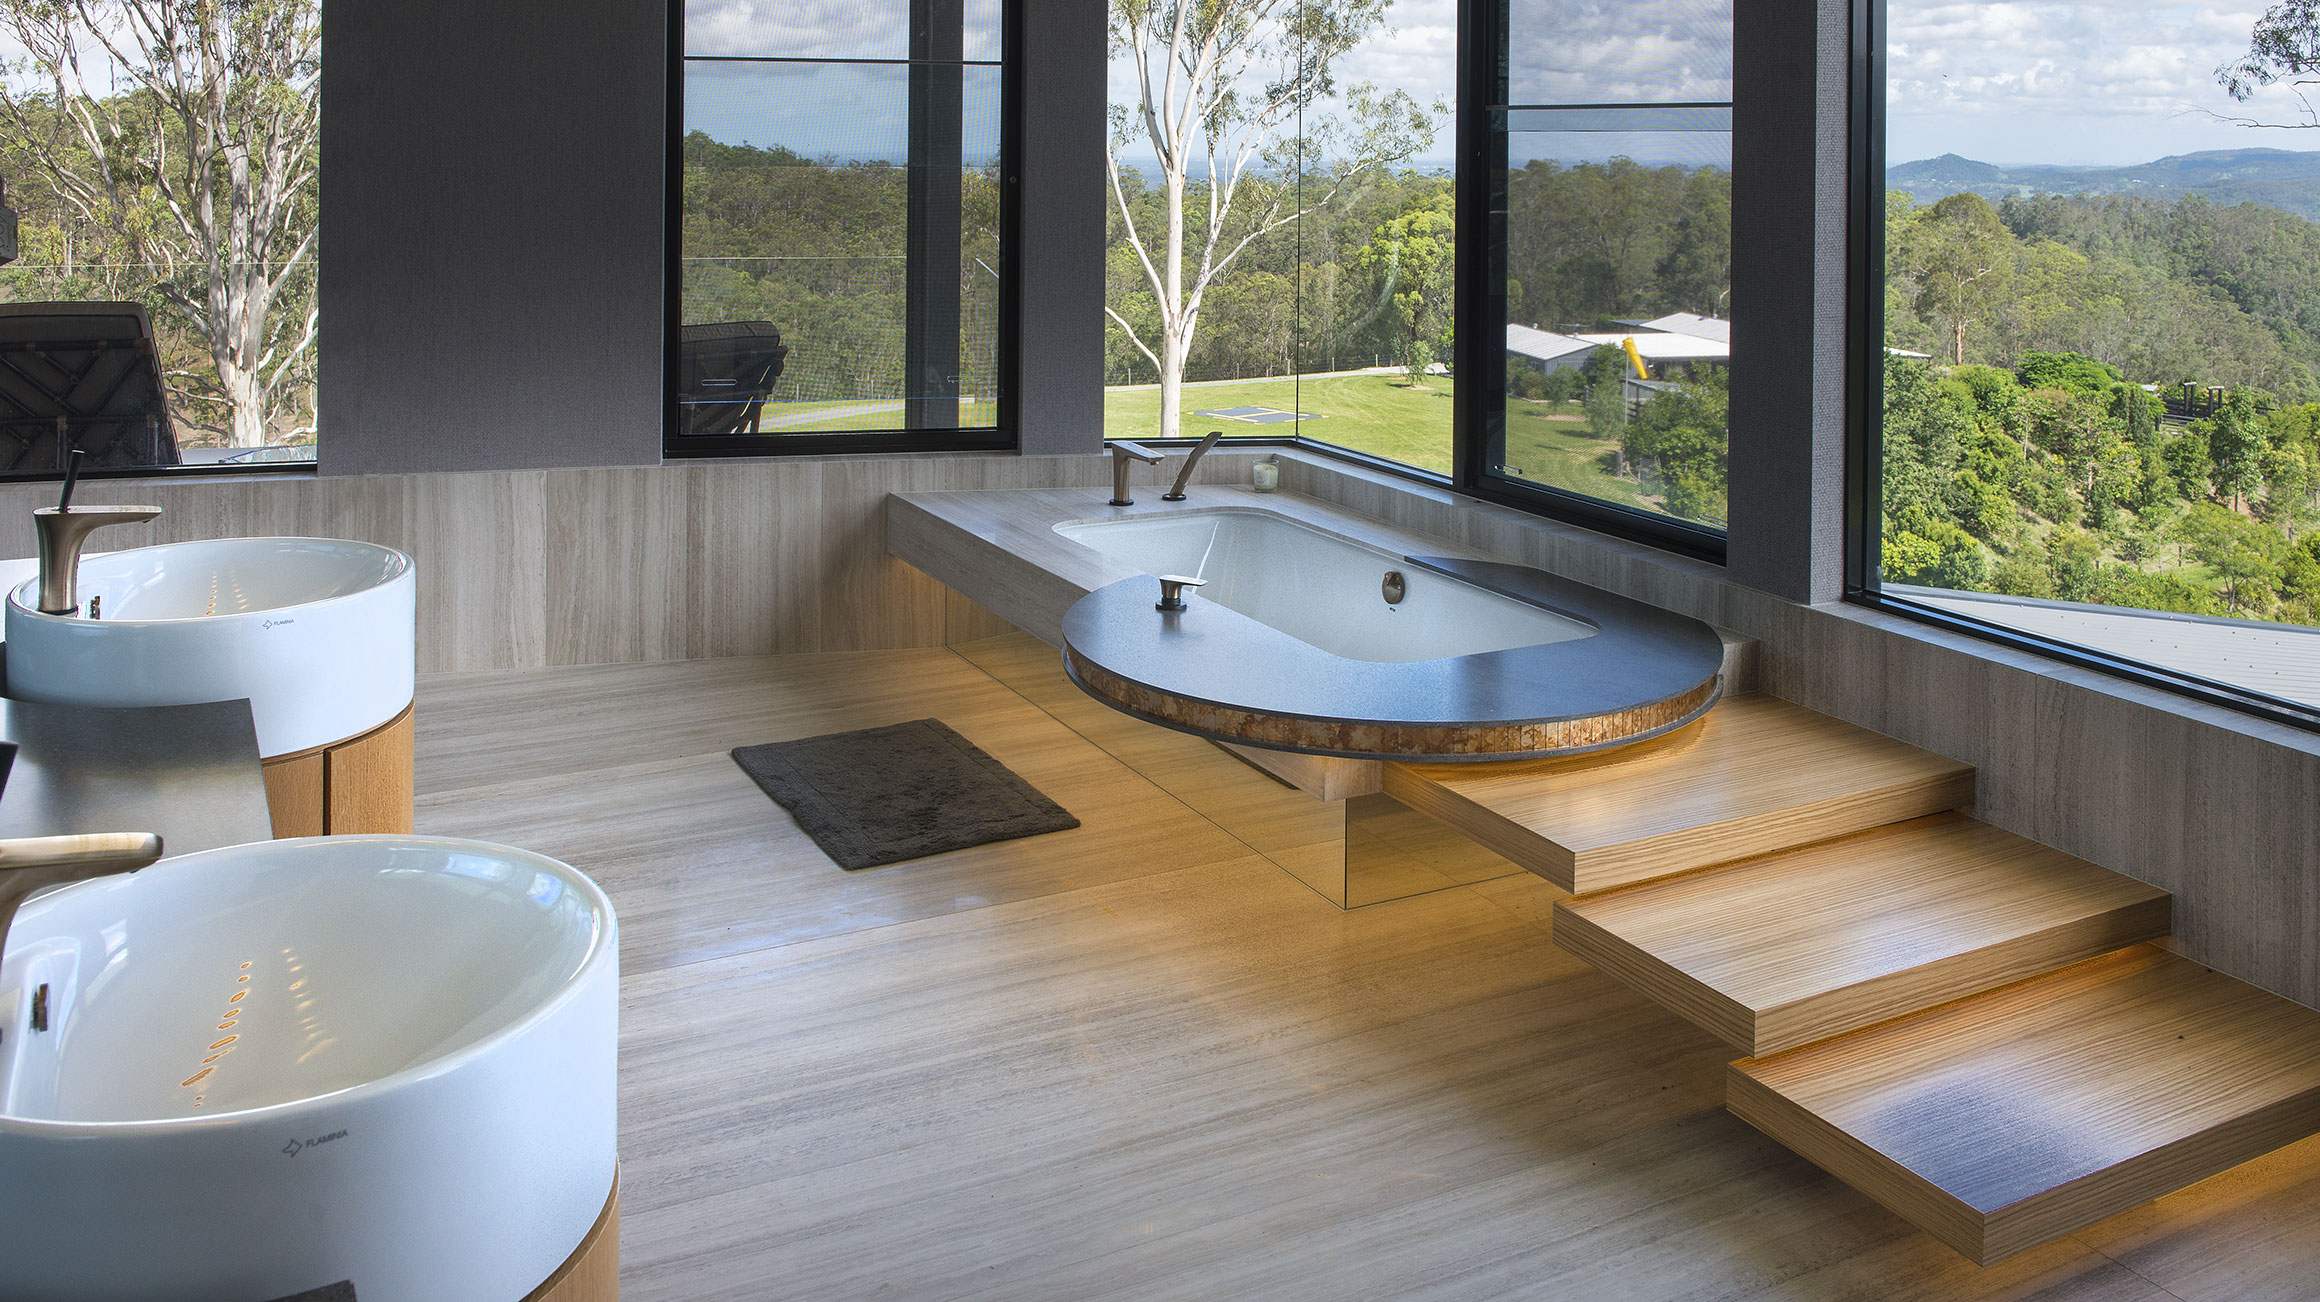 Natural Bathroom With Avant Garde Design Elements